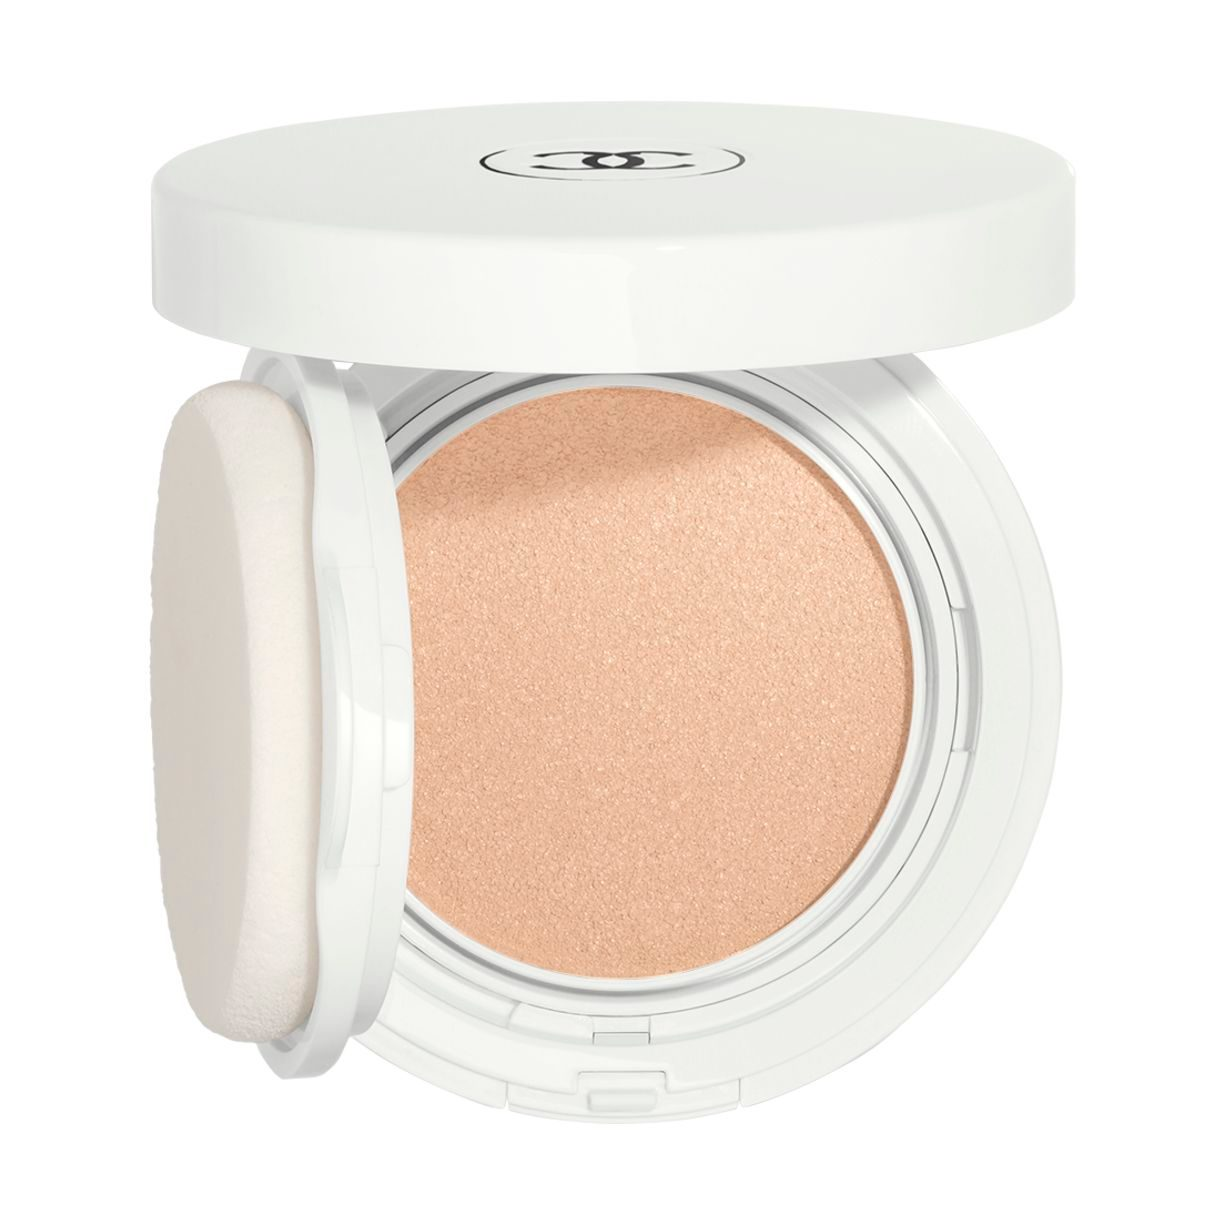 LE BLANC OIL-IN-CREAMCOMPACT FOUNDATION WHITENING – THERMAL COMFORT SPF 40 / PA ++